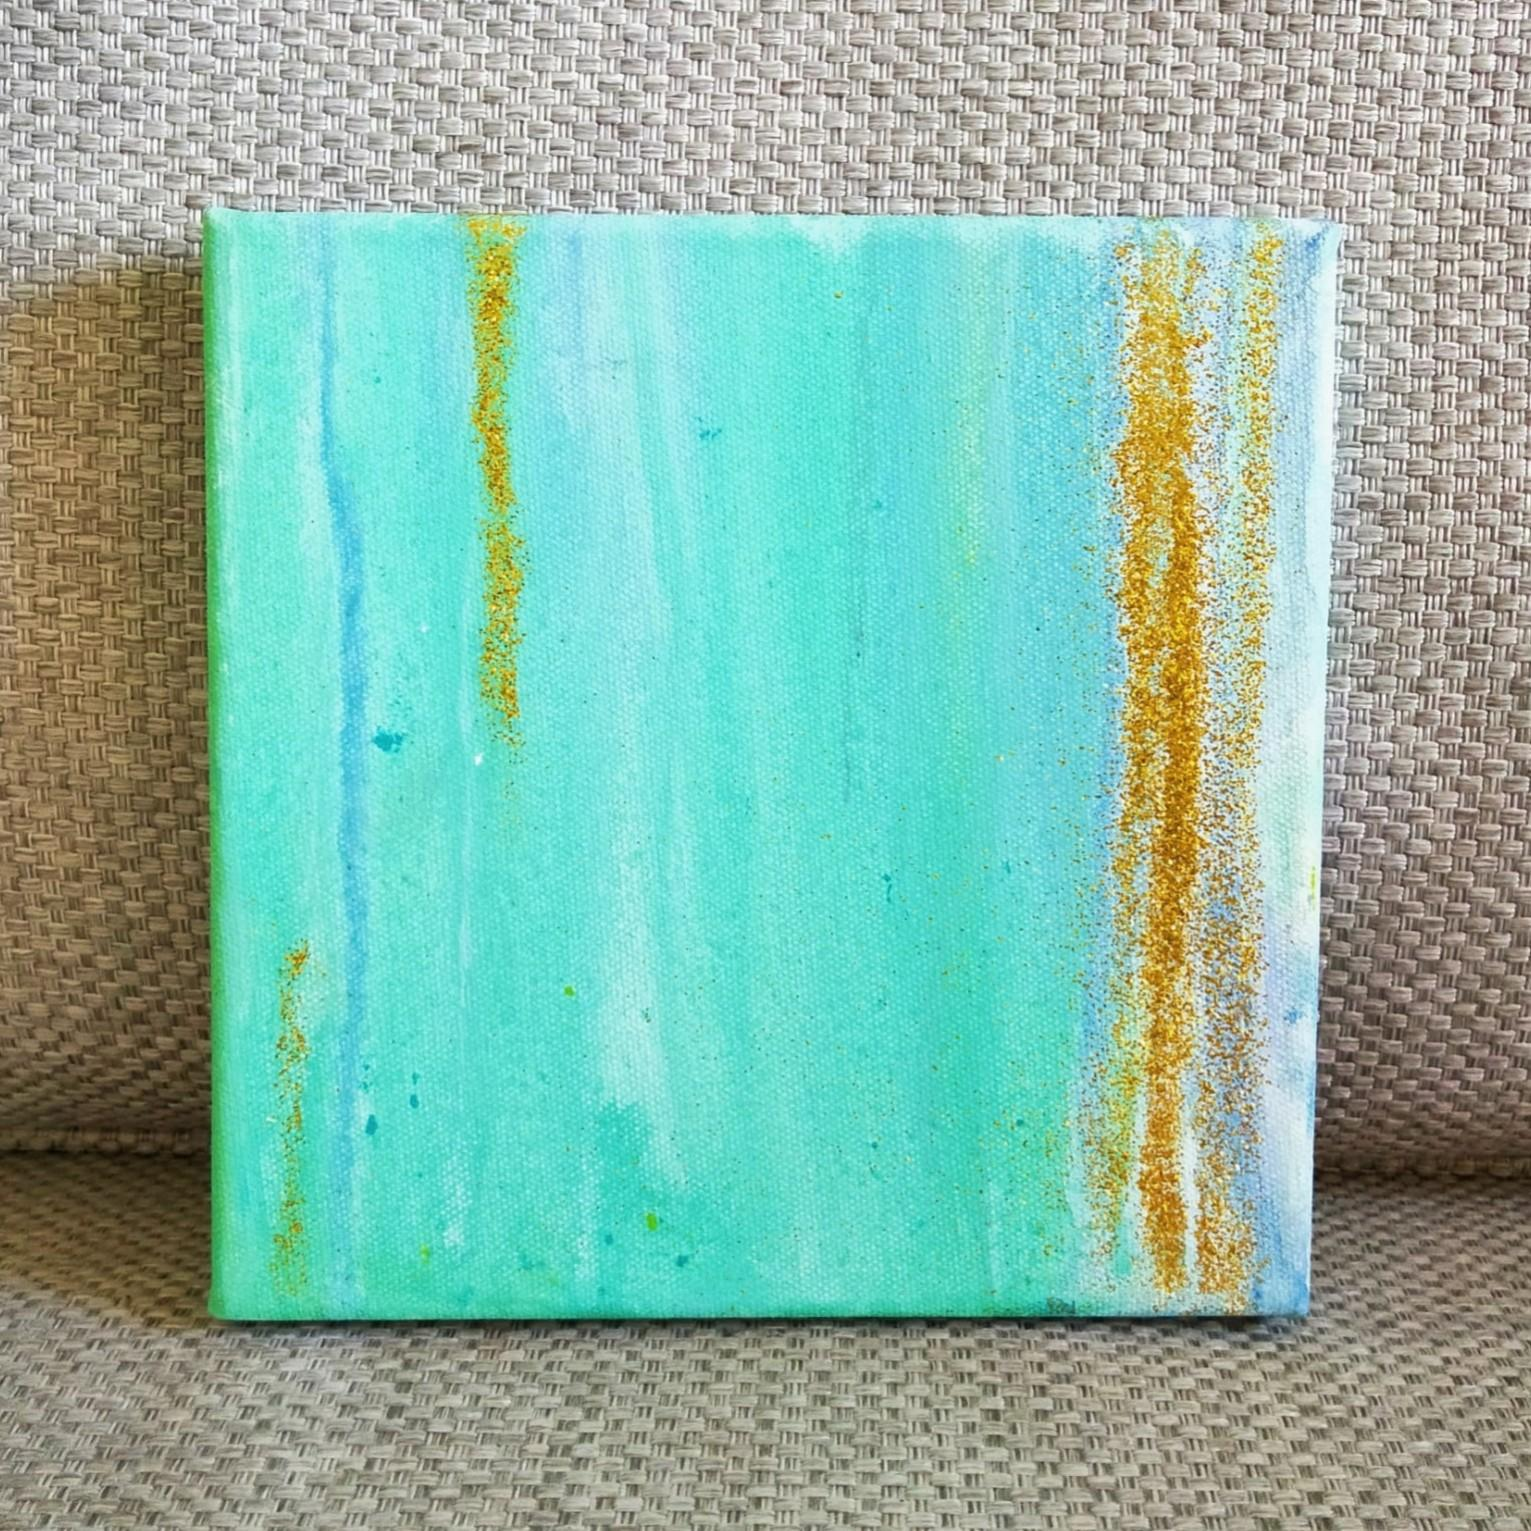 Mint green & gold abstract painting 8x8 inches modern minimalist  original